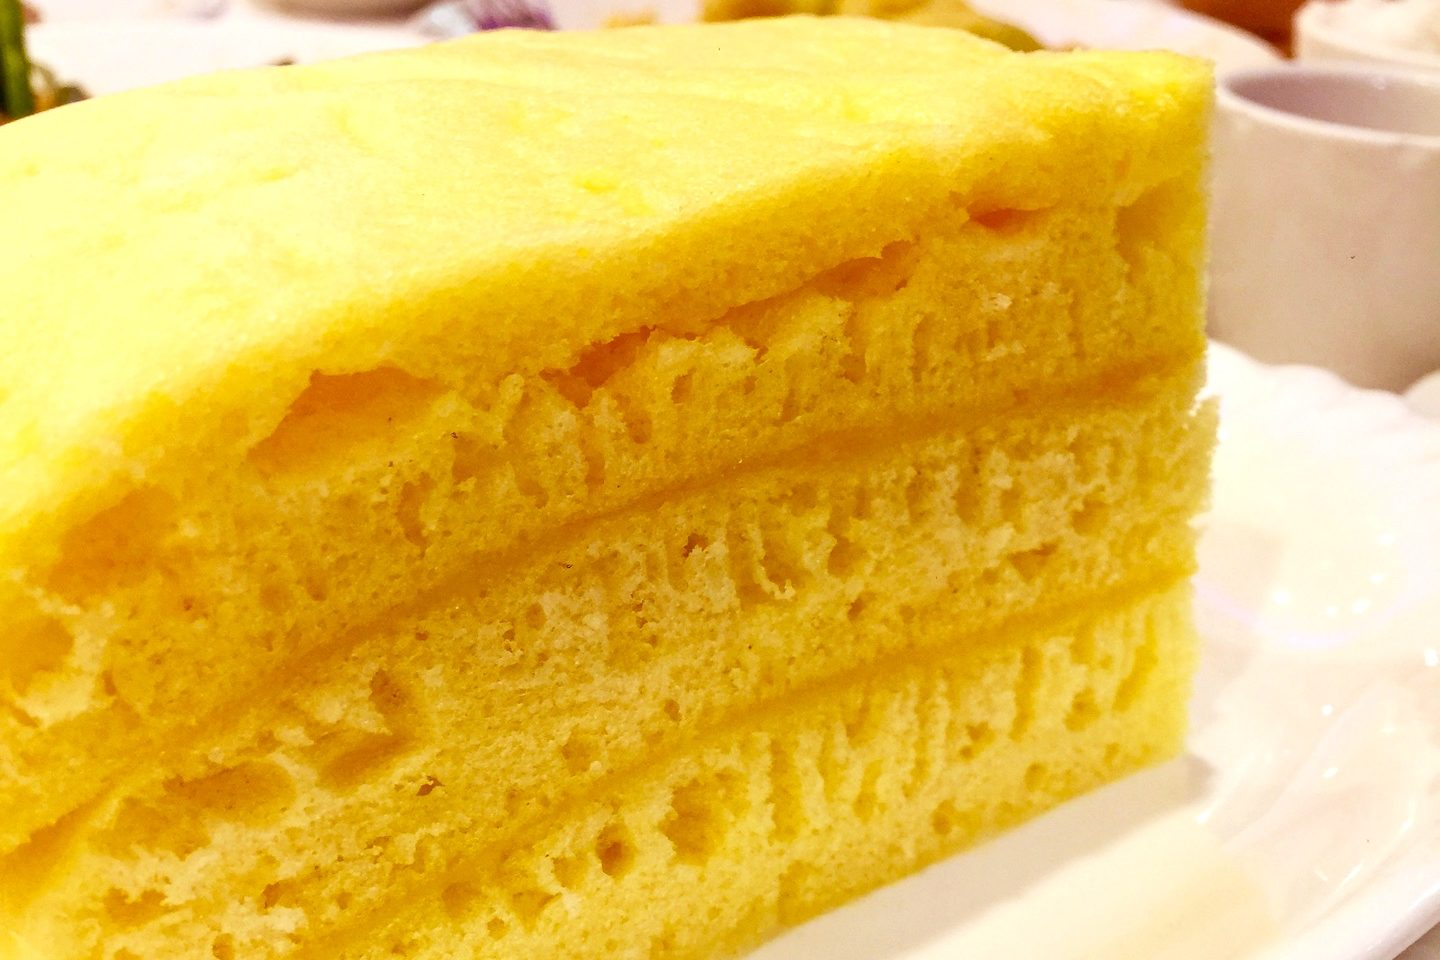 fortune-city-malay-cake